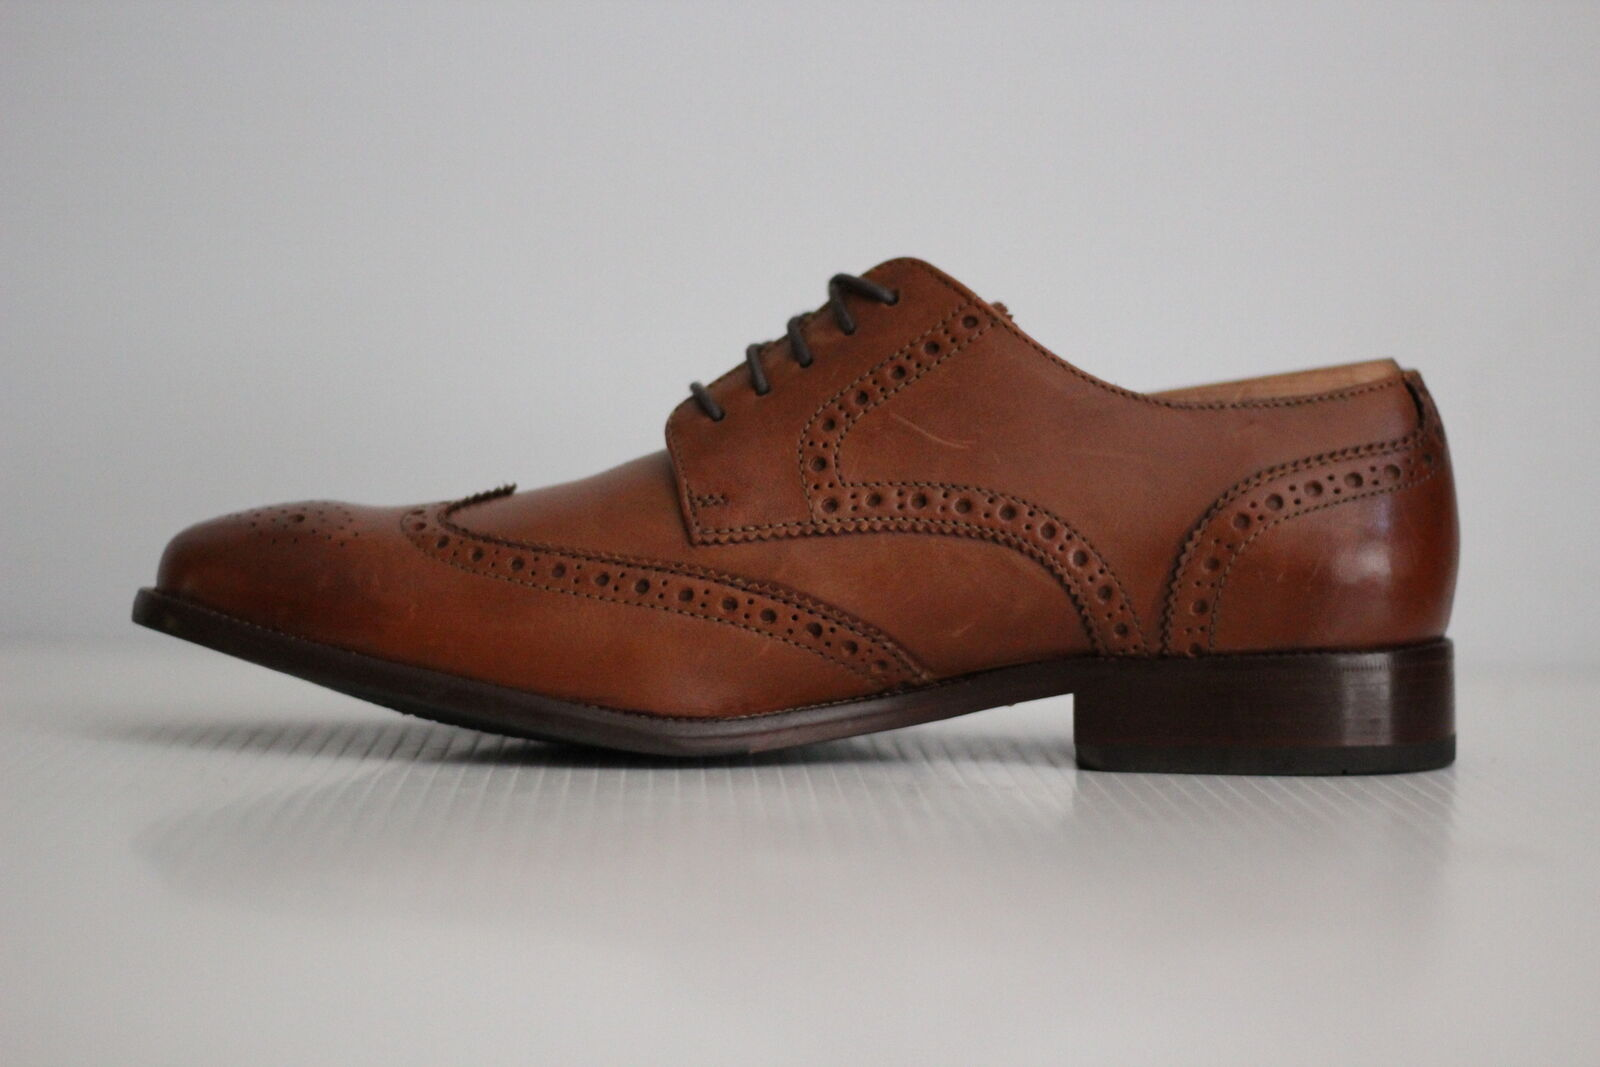 NEW Cole Haan Benton Wingtip Oxford Oxford Oxford II - British Tan - 9 M - C24116 (Q52) a1f977